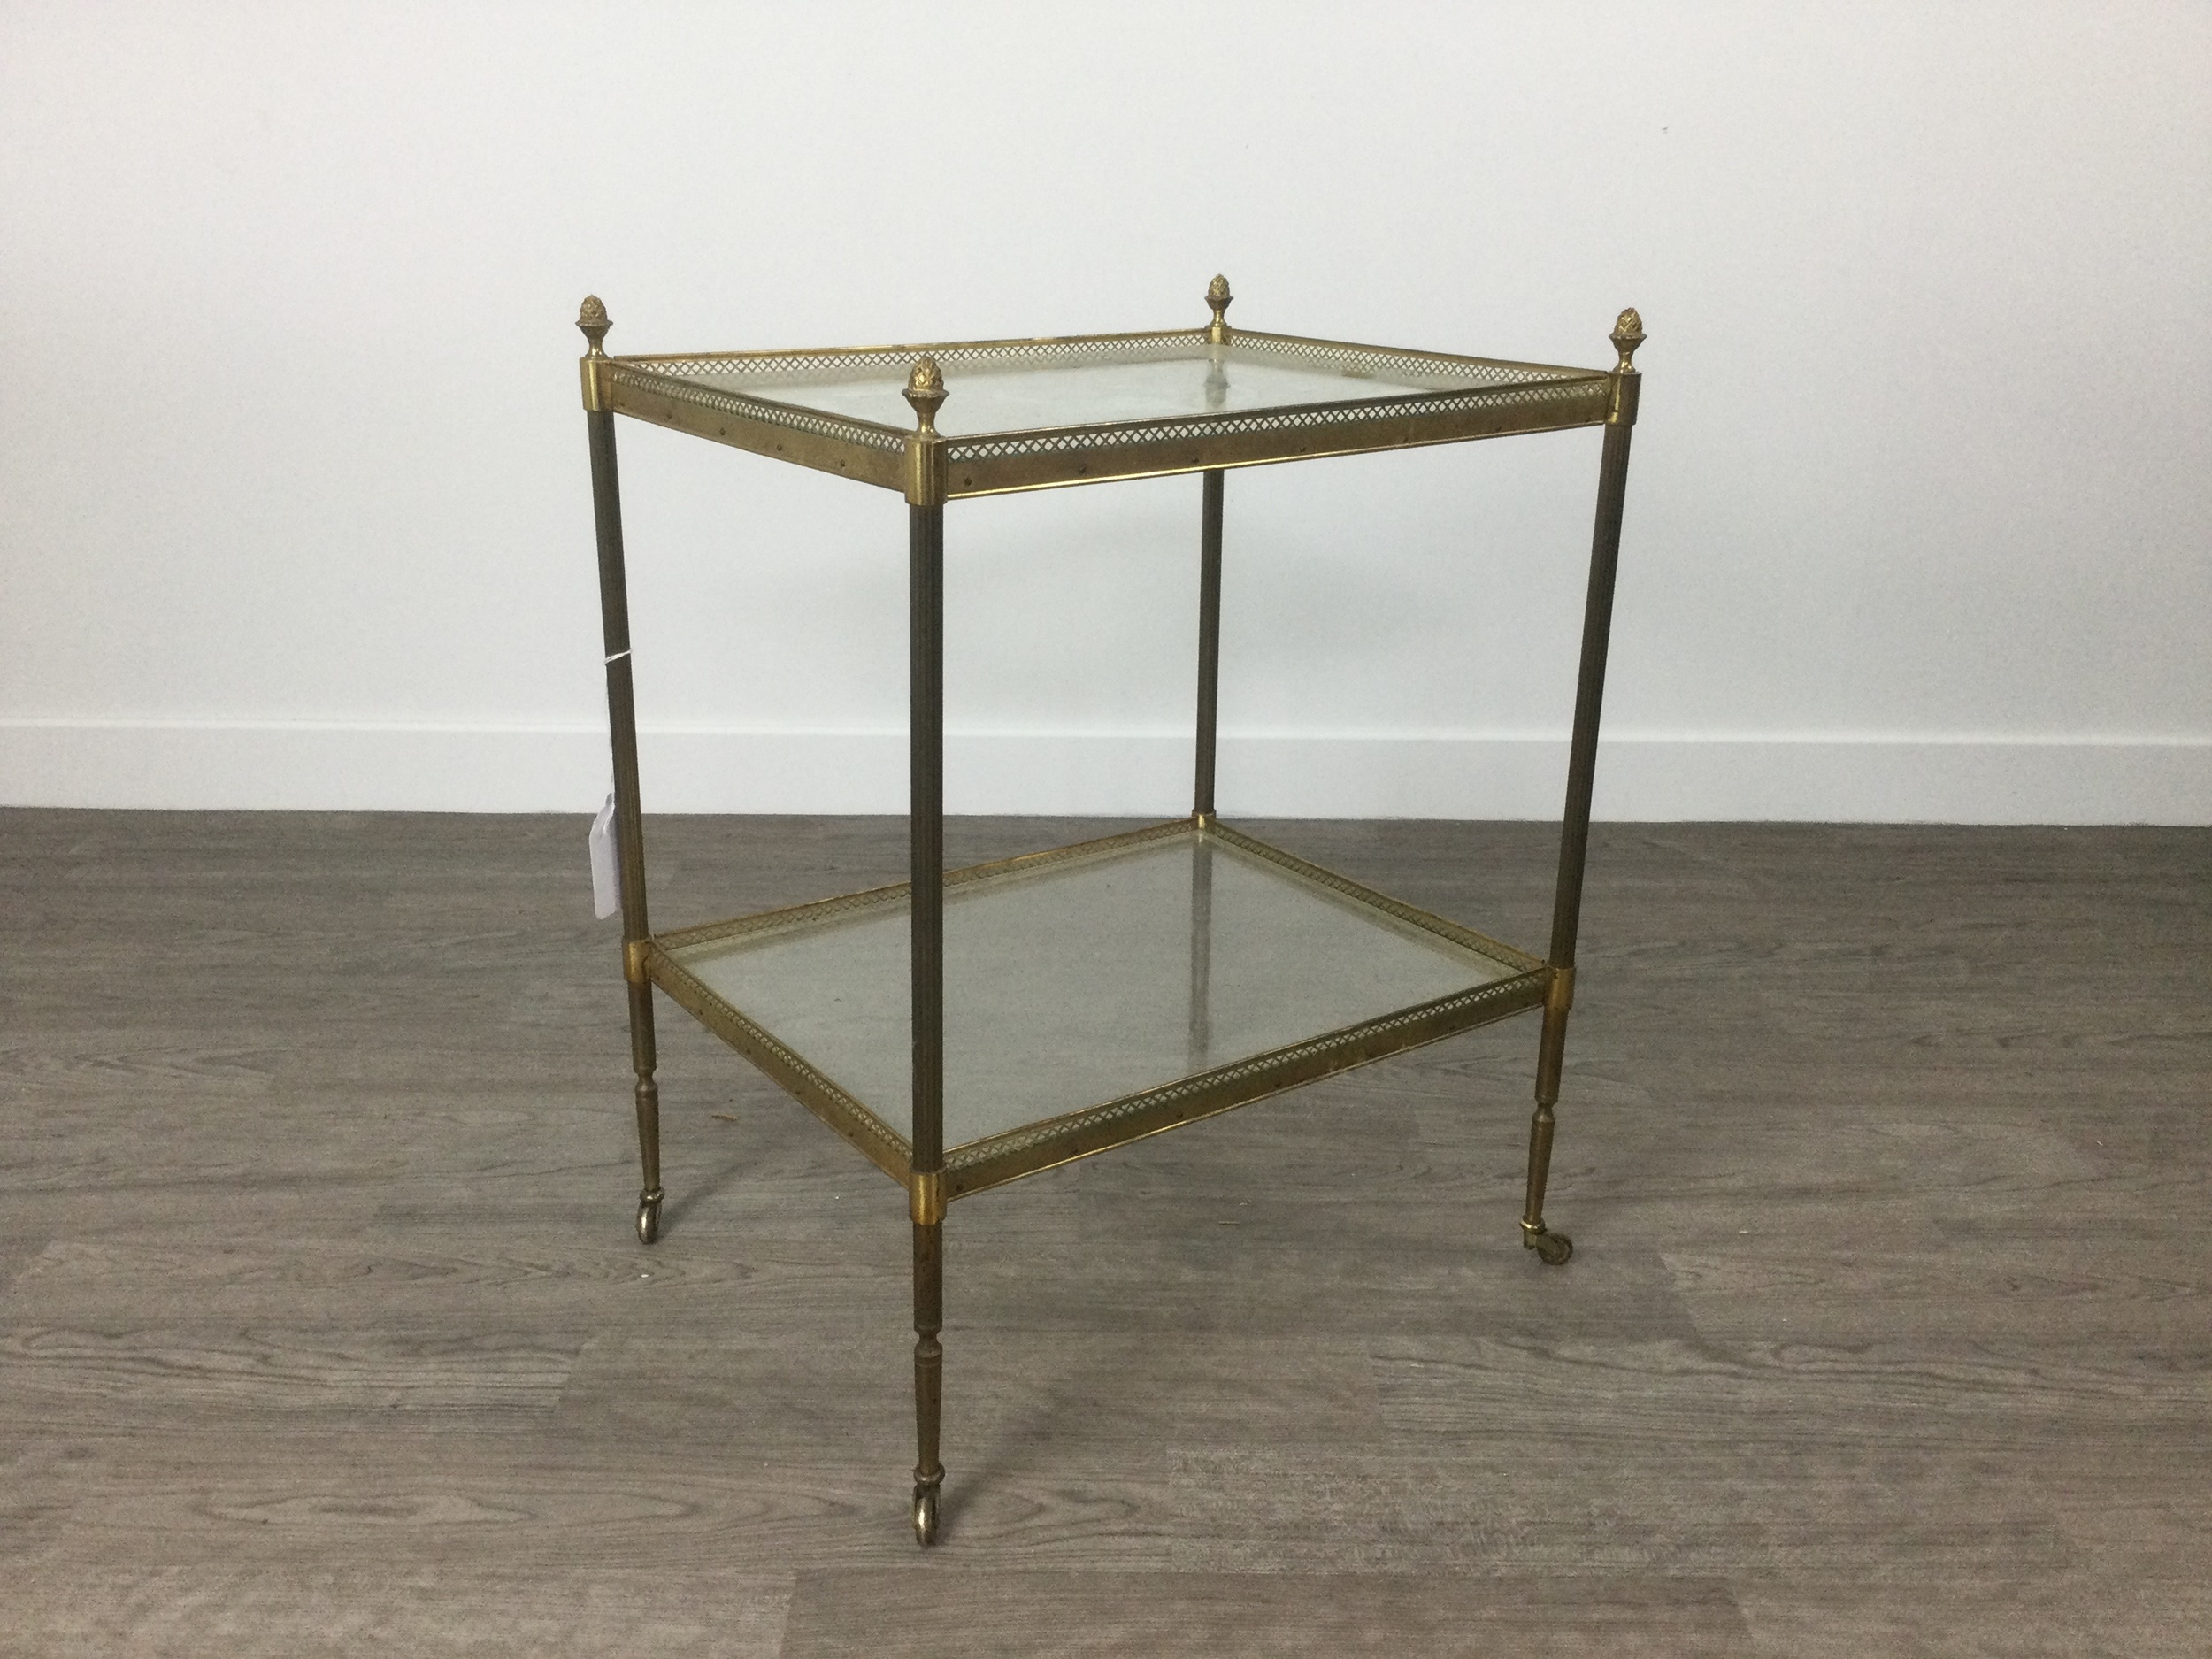 AN EARLY 20TH CENTURY BRASS SERVING TROLLEY